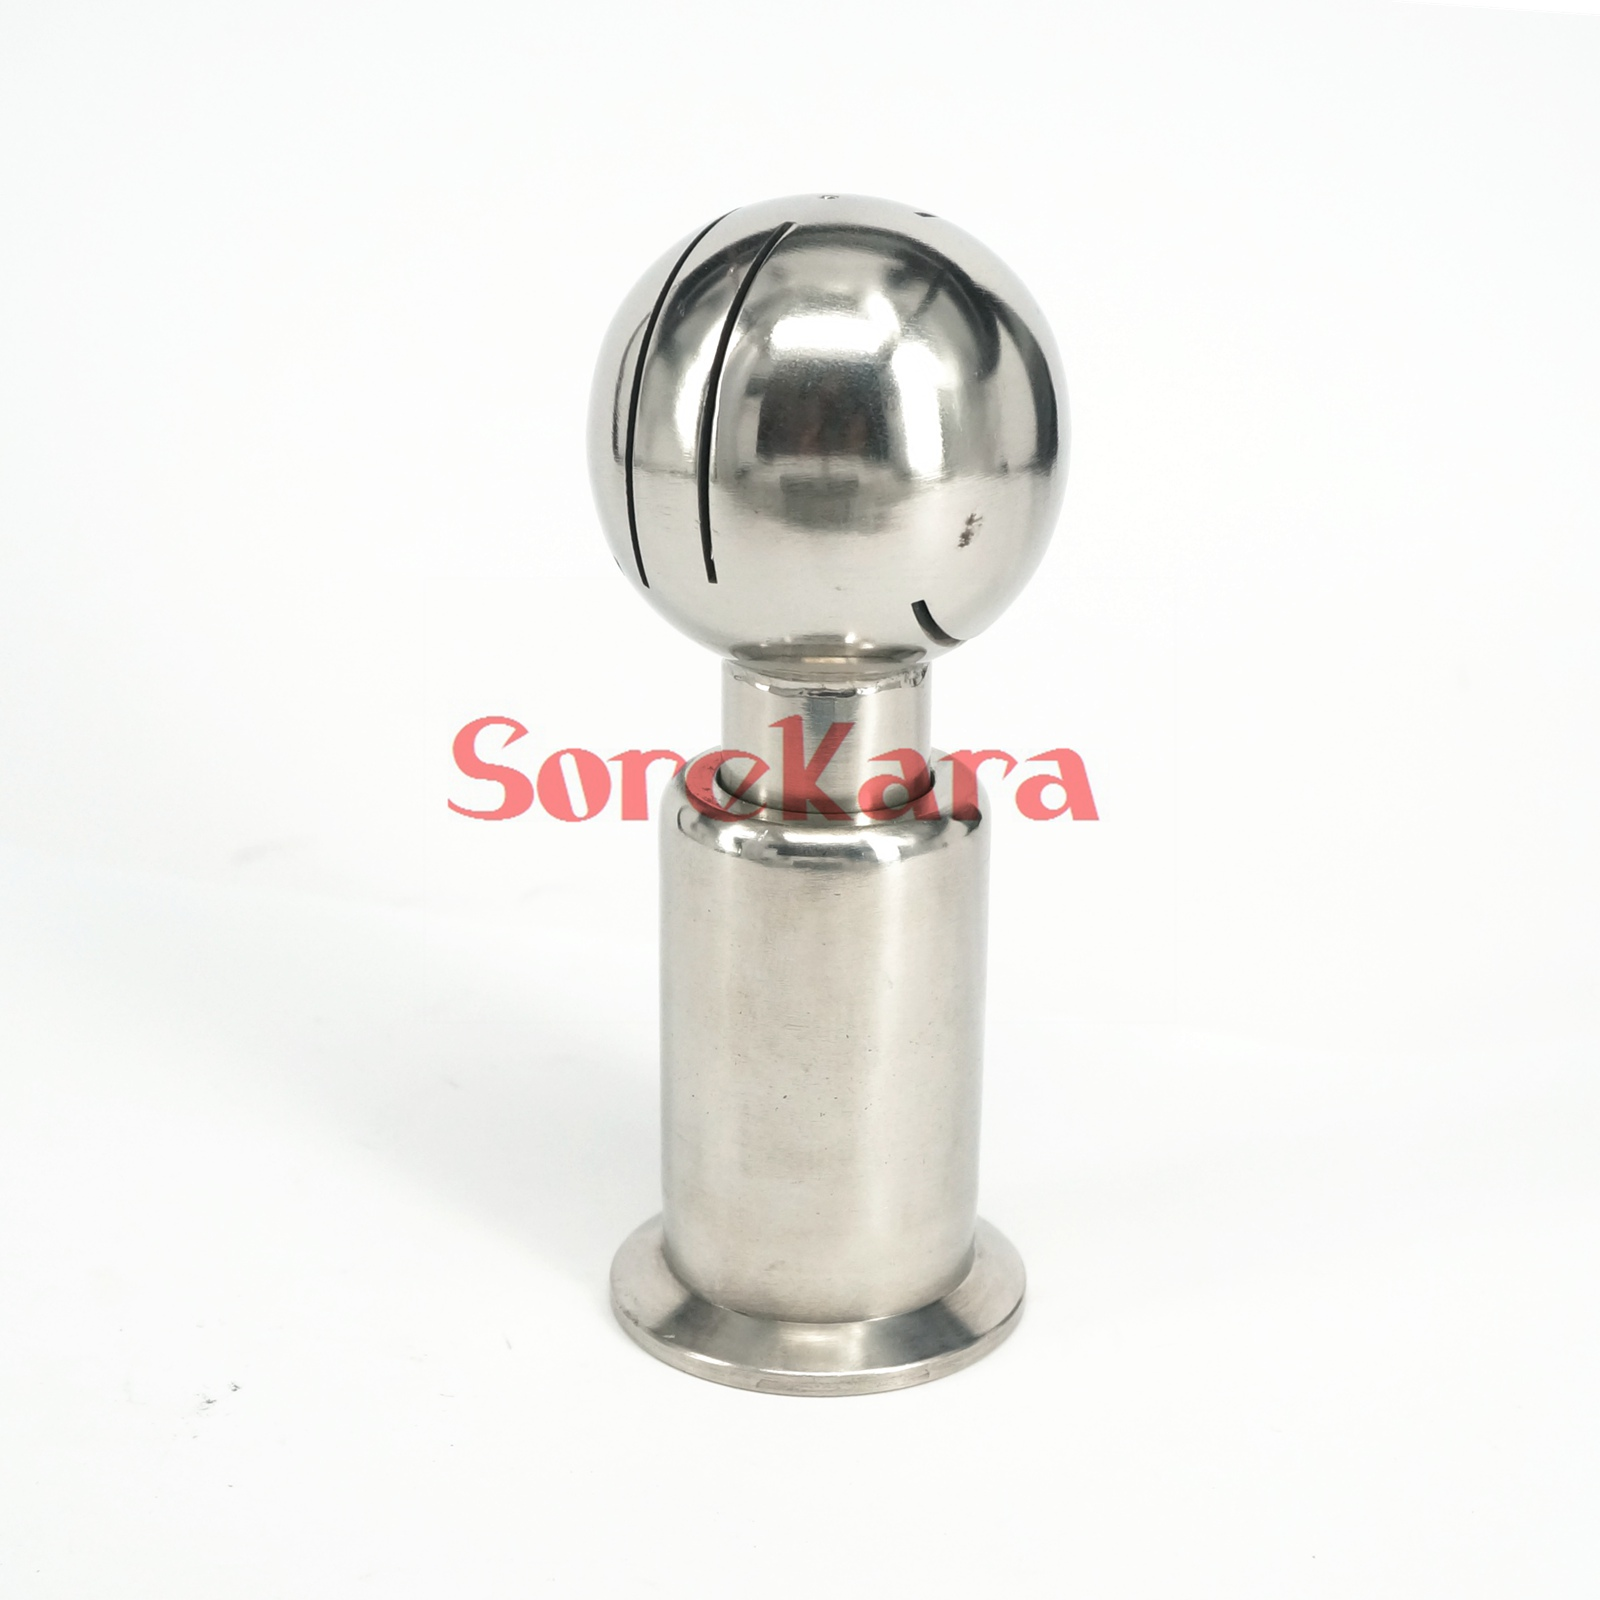 1.5 Tri clamp SS304 Stainless Steel Rotary Spray Ball 50.5mm Ferrule O/D Clamp CIP Tank Cleaning zuczug 1 5 ss304 stainless steel female rotary spray cleaner sanitary nipple rotating cleaning ball nozzle horn washer tank